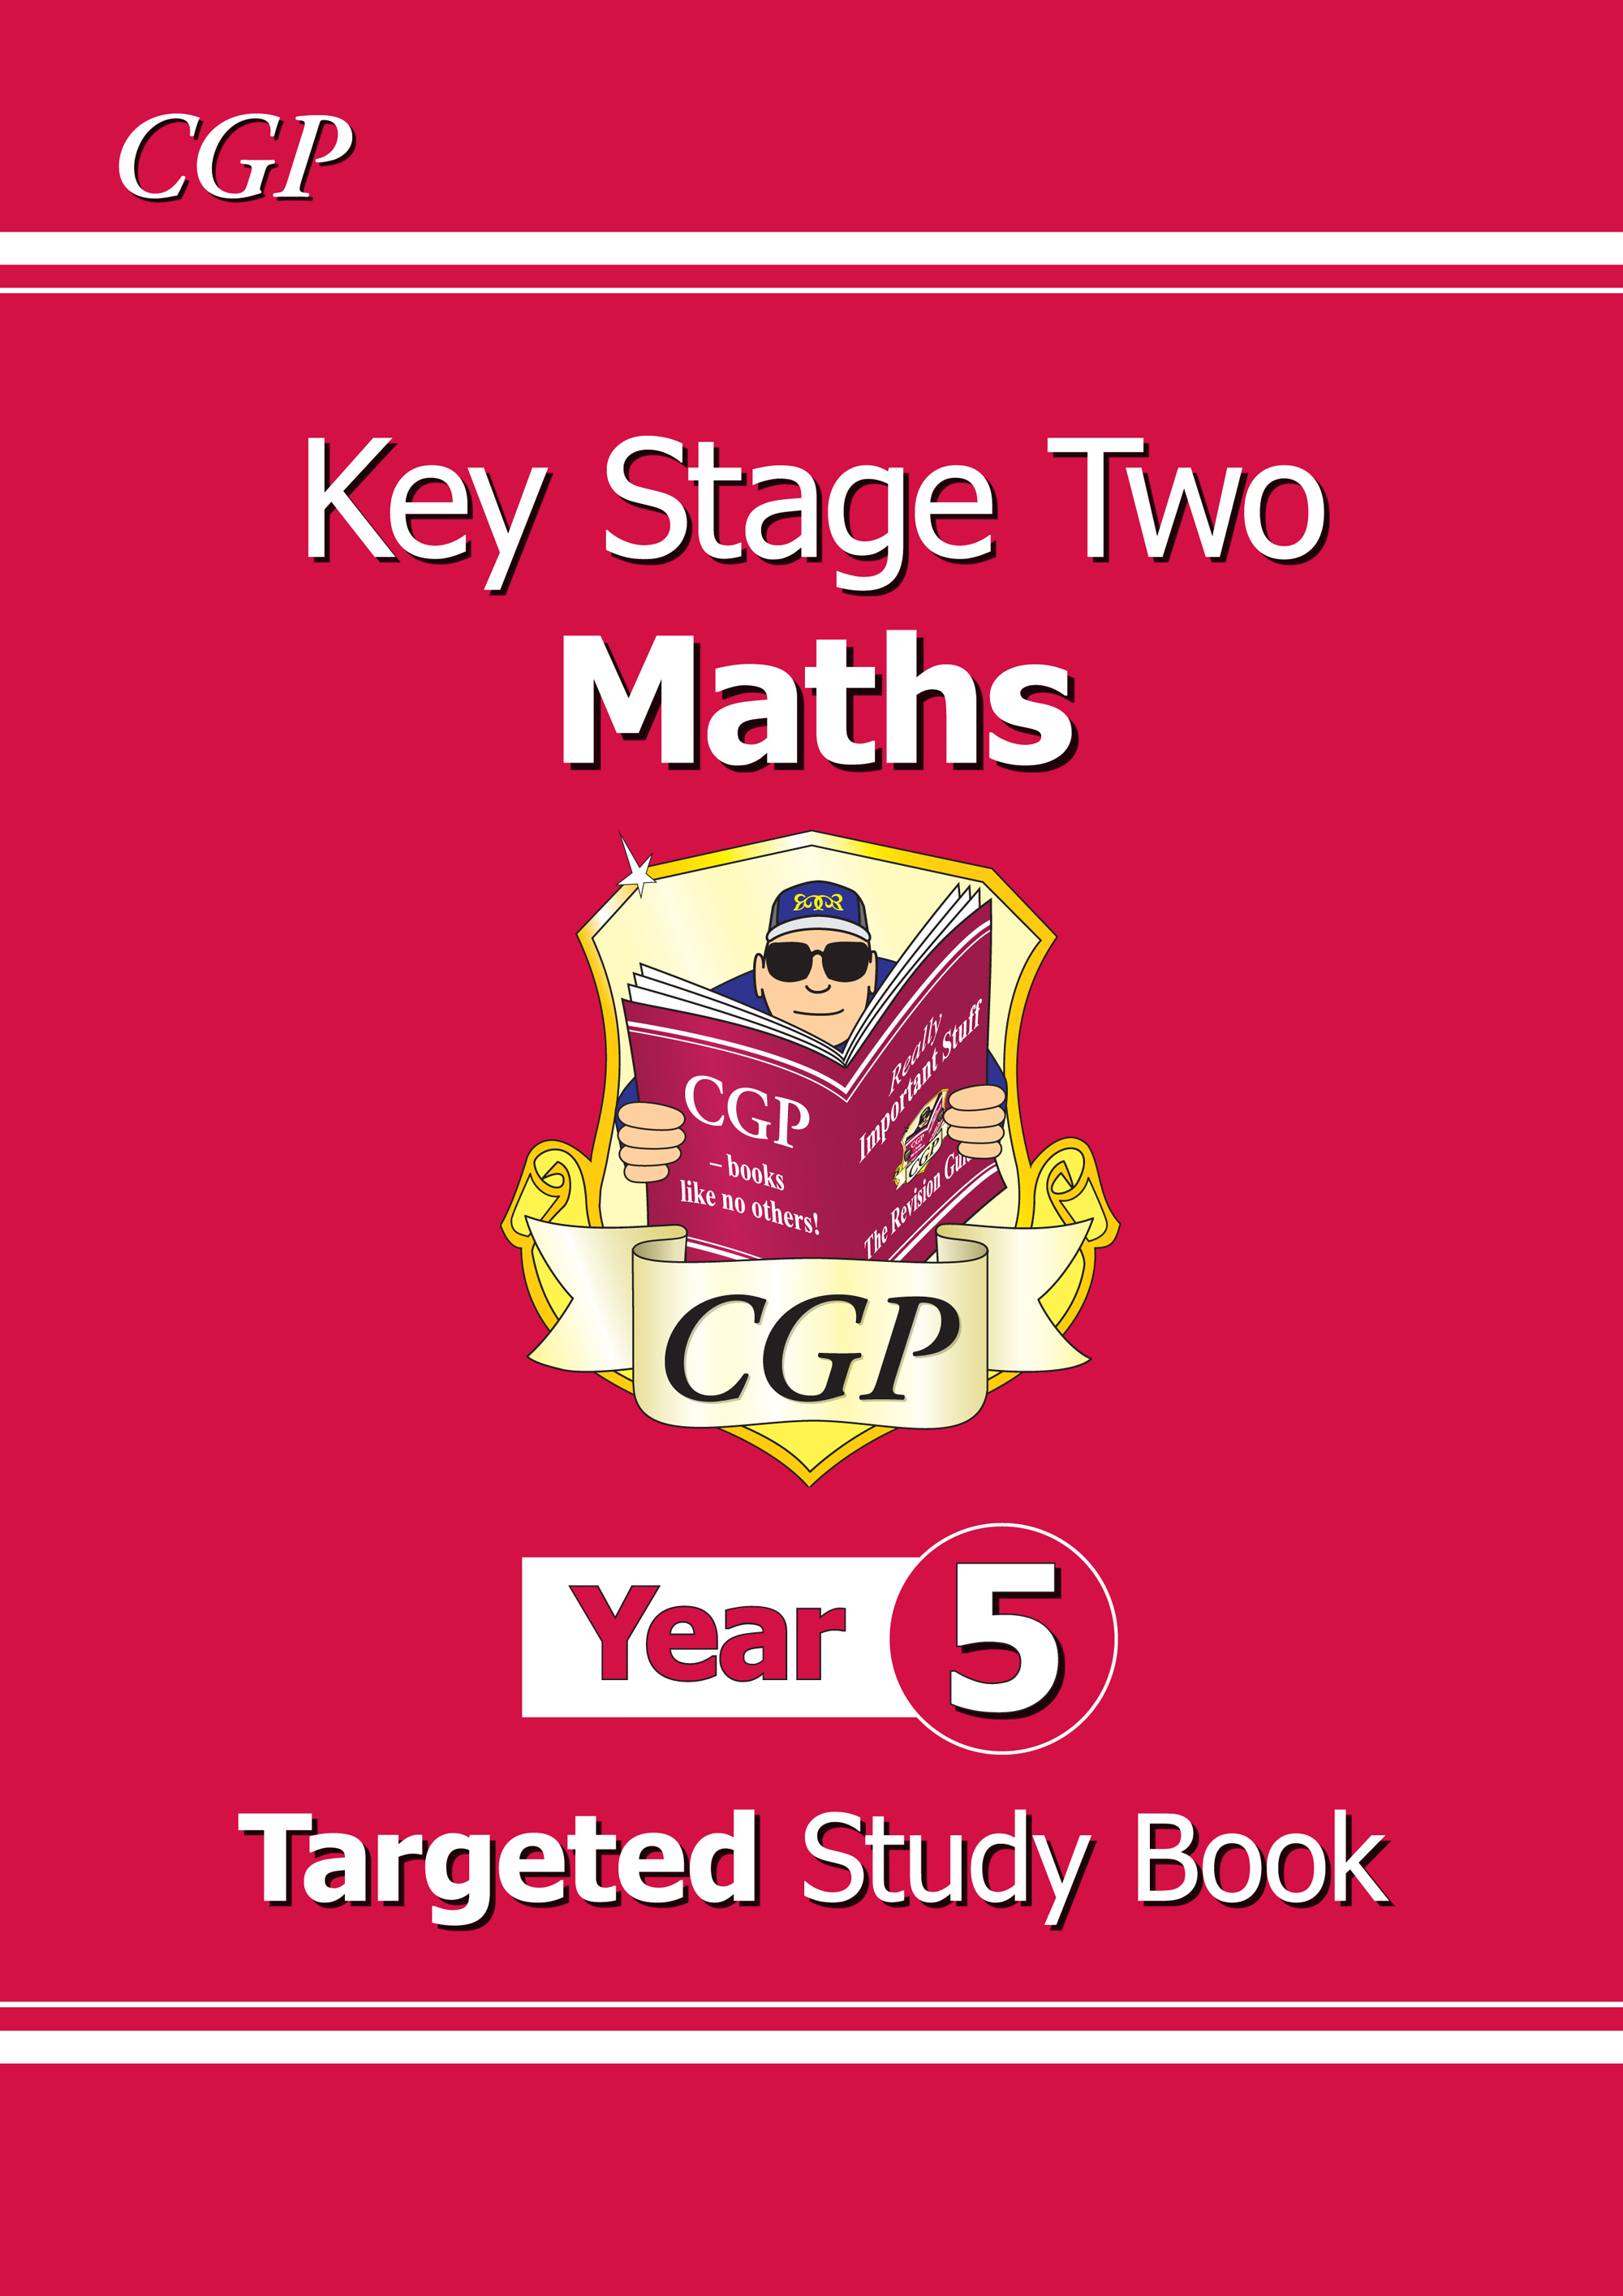 M5R23 - KS2 Maths Targeted Study Book - Year 5